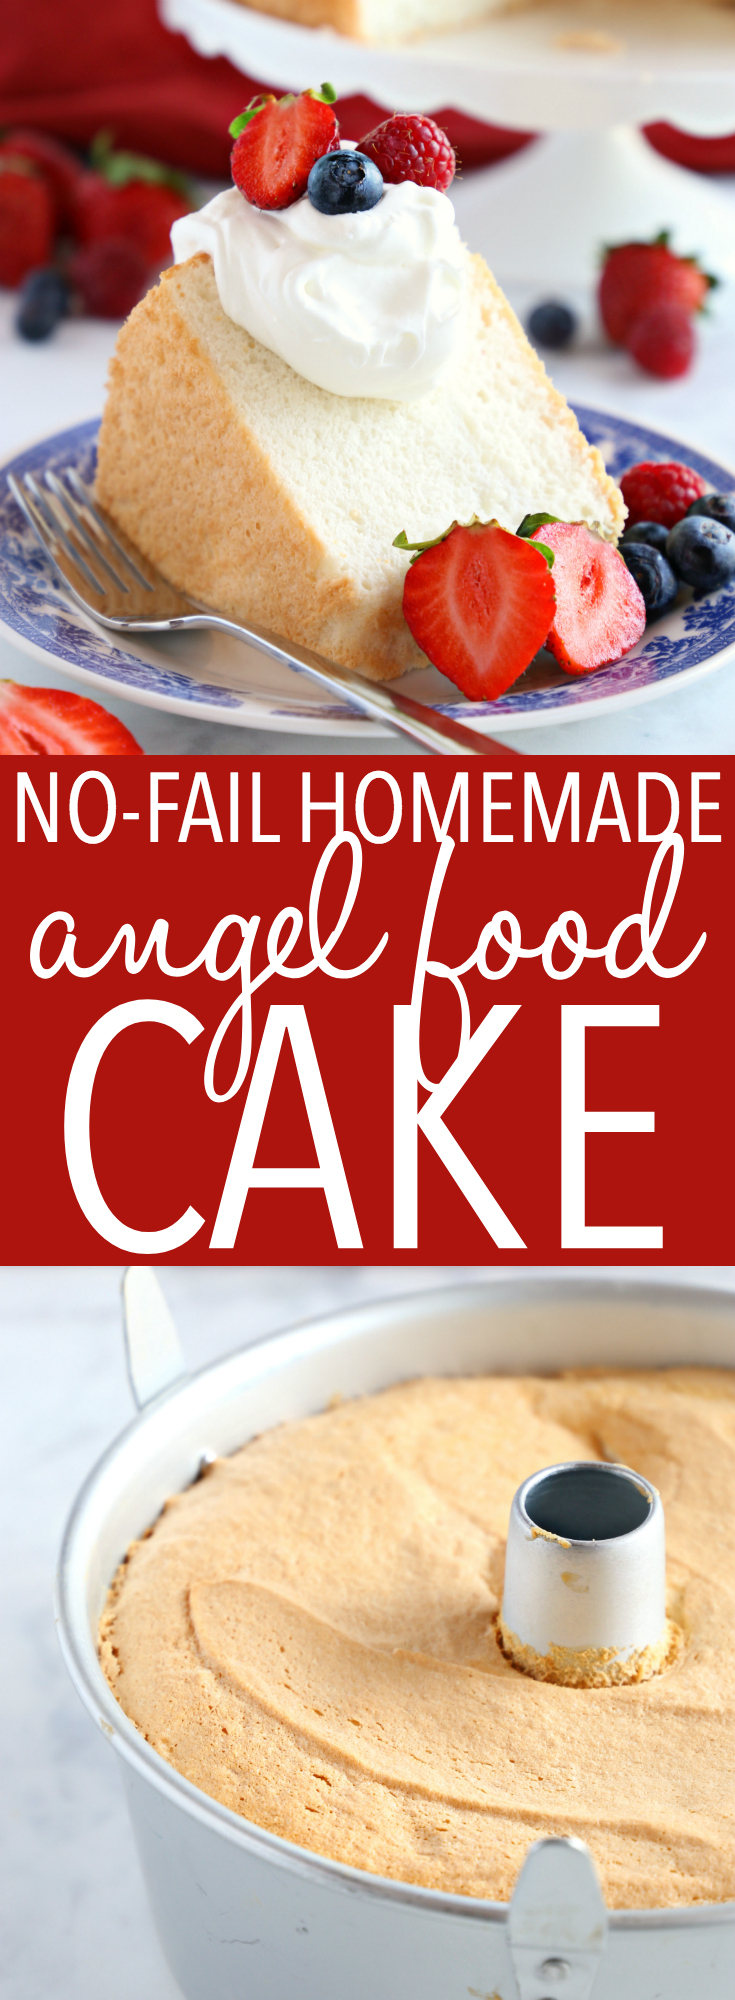 This No Fail Homemade Angel Food Cake is the best homemade angel food cake recipe that's tender and fluffy, and easy to make with my pro tips! Better than a box mix! Recipe from thebusybaker.ca! #angelfoodcake #homemadeangelfoodcake #bestangelfoodcake #easycakerecipe #besteverangelfoodcake #homemadecake via @busybakerblog